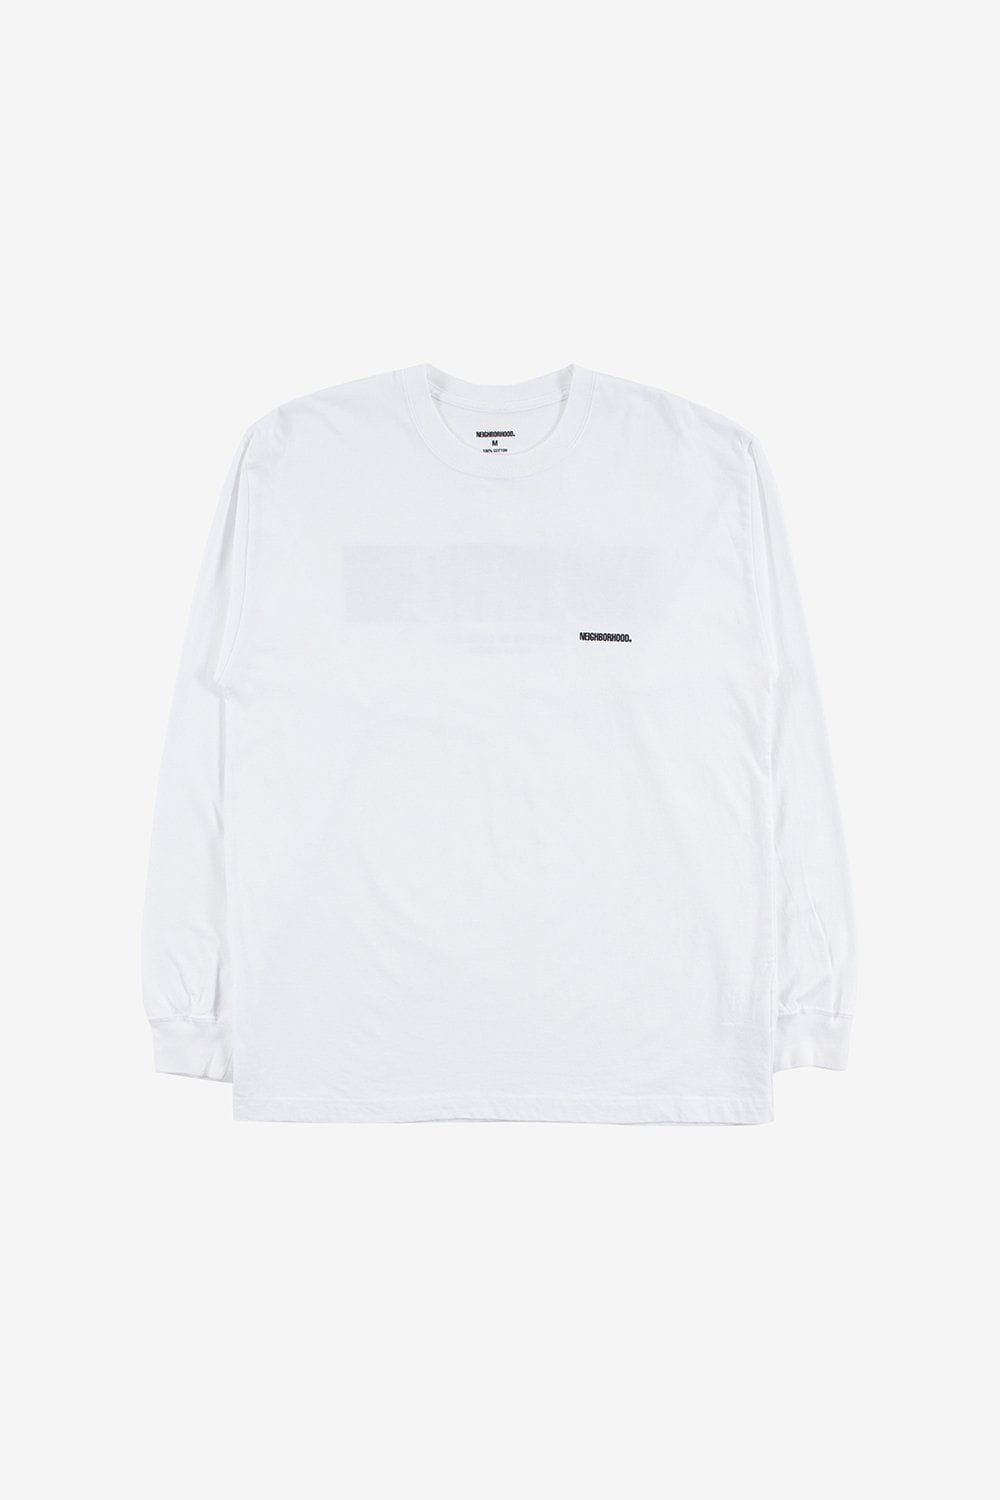 Neighborhood Apparel In My Eyes Long Sleeve Tee White